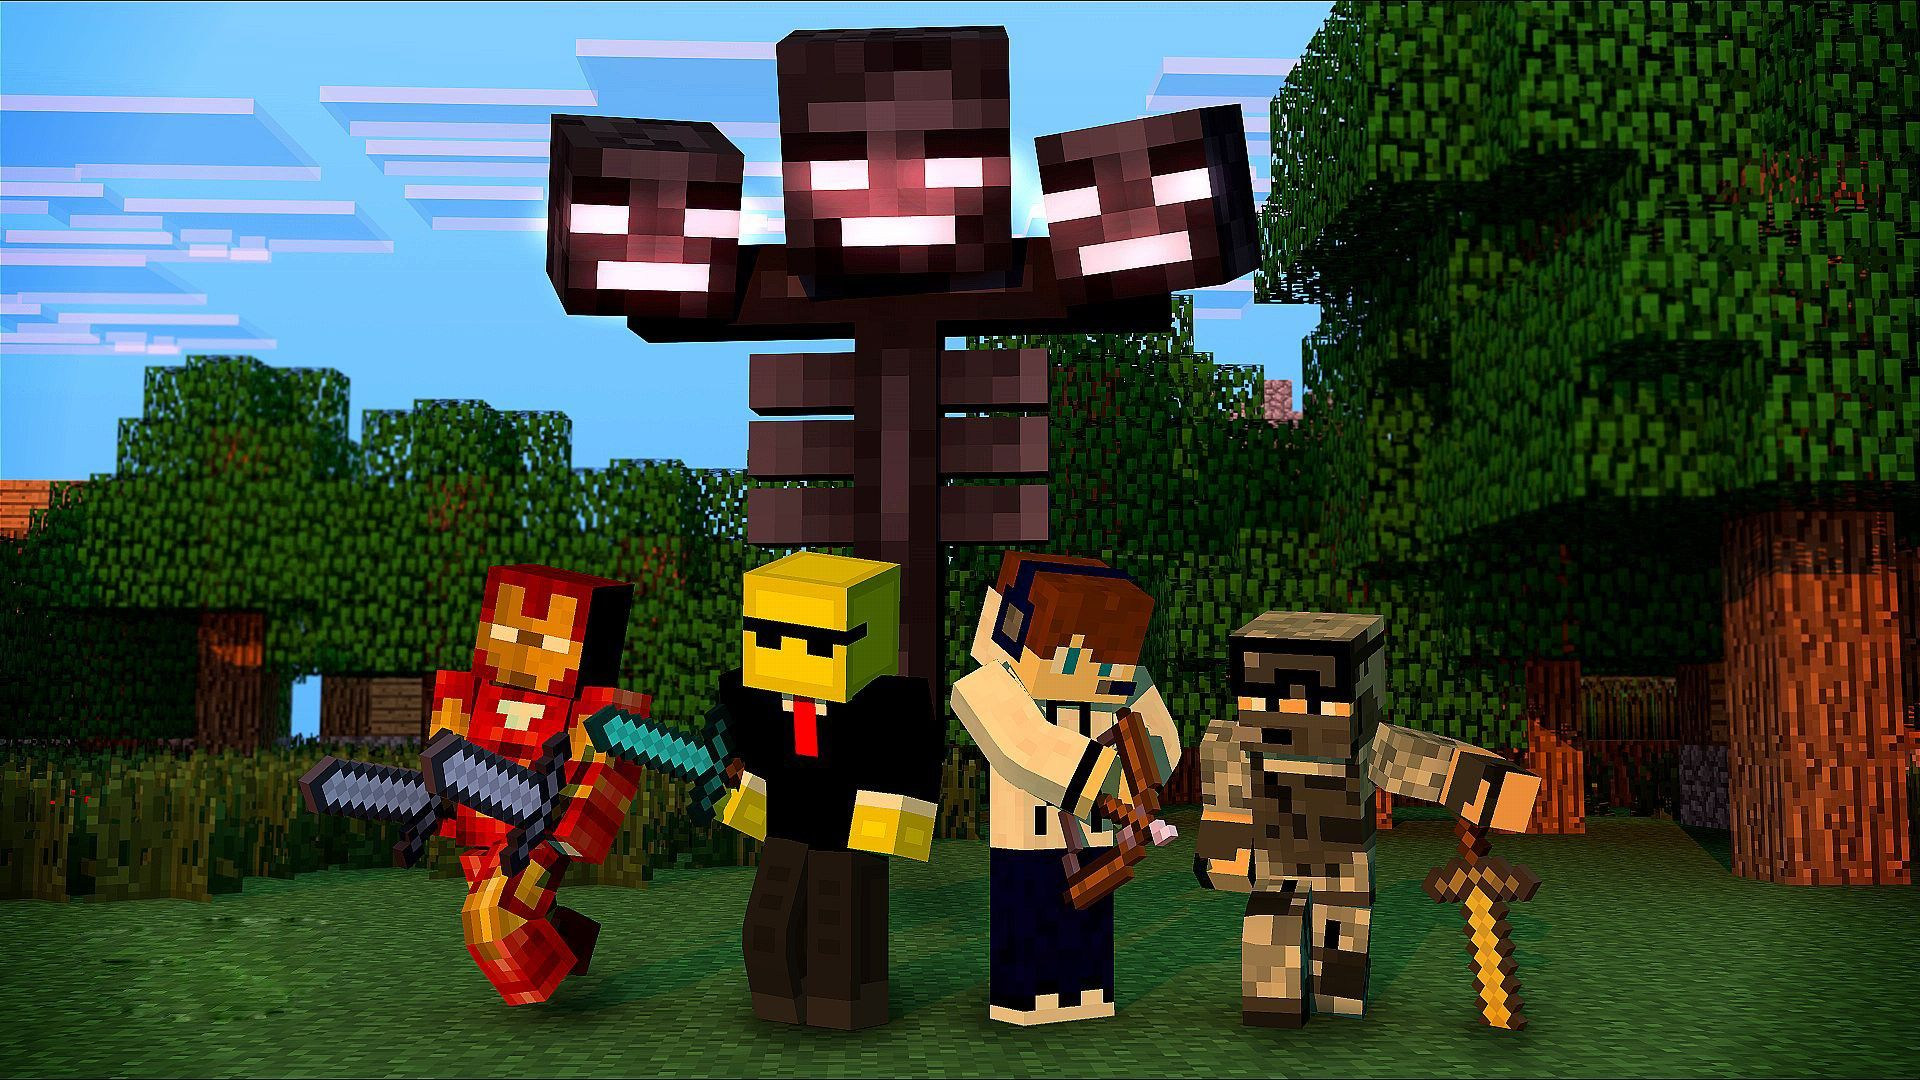 Free Hd Minecraft Wallpapers